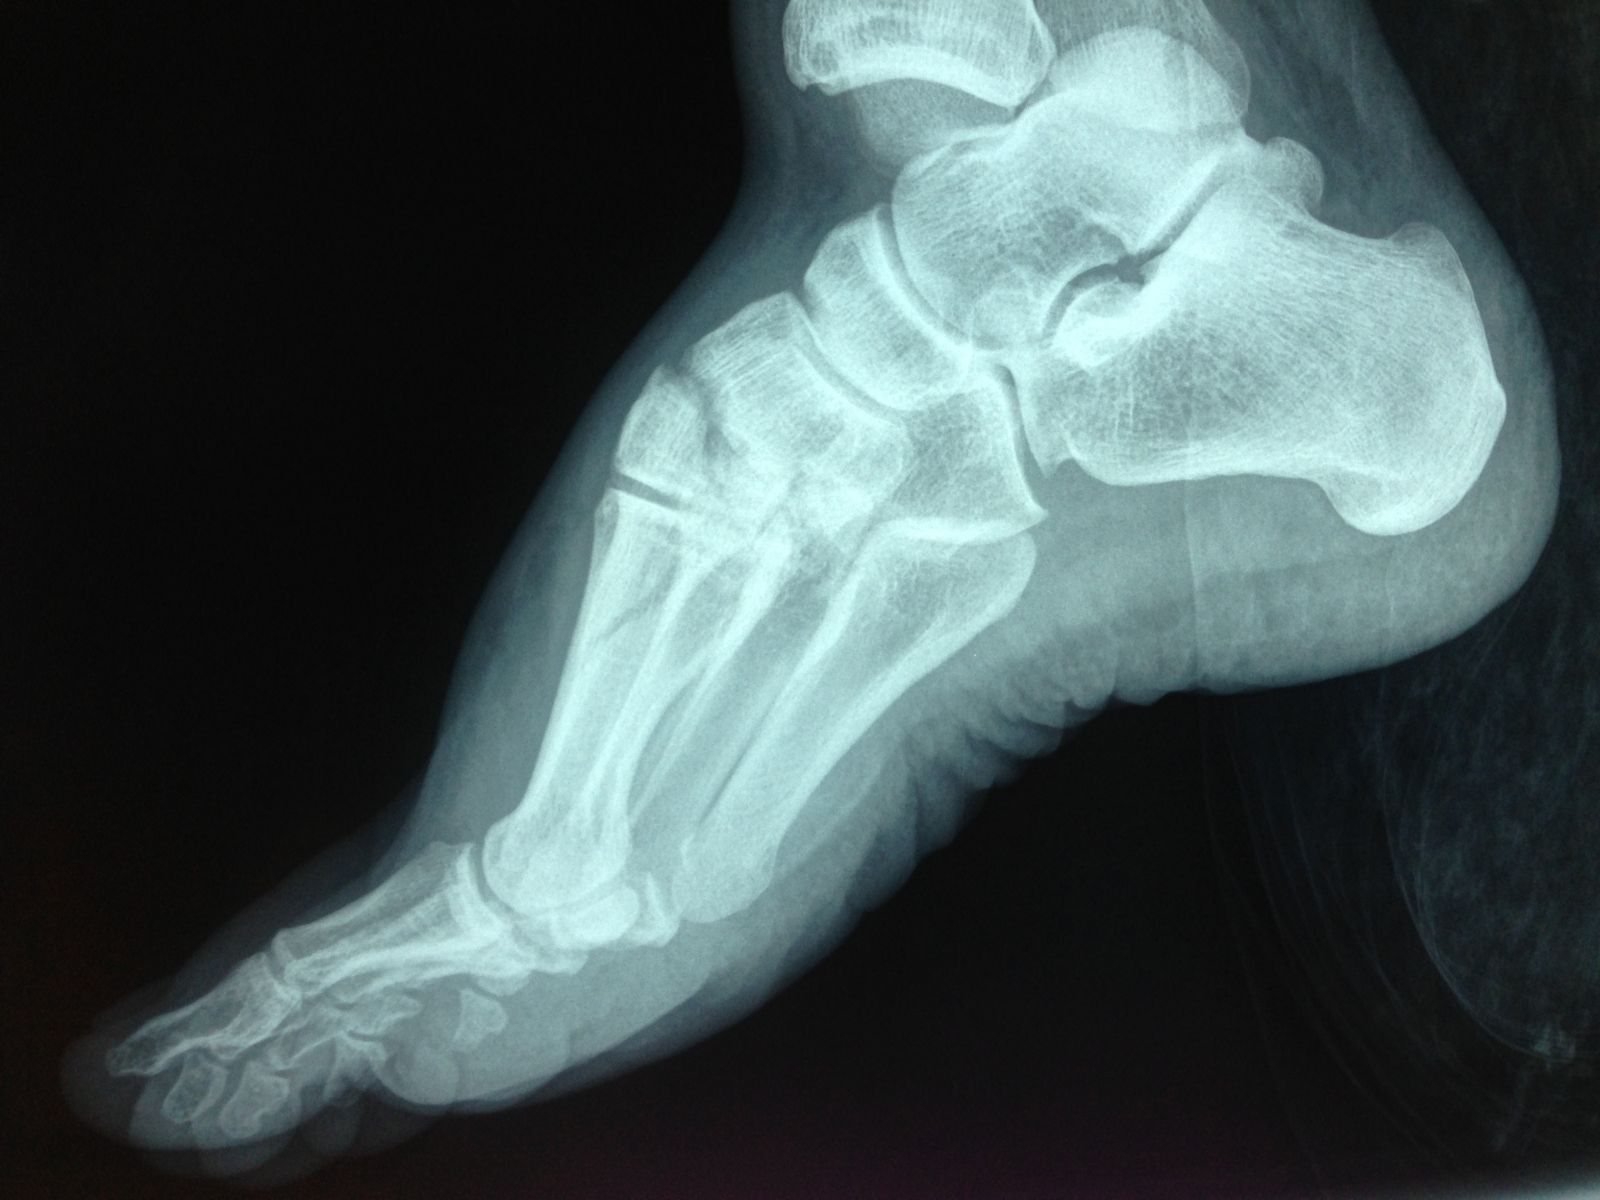 Broken Bone Top Of Foot 48